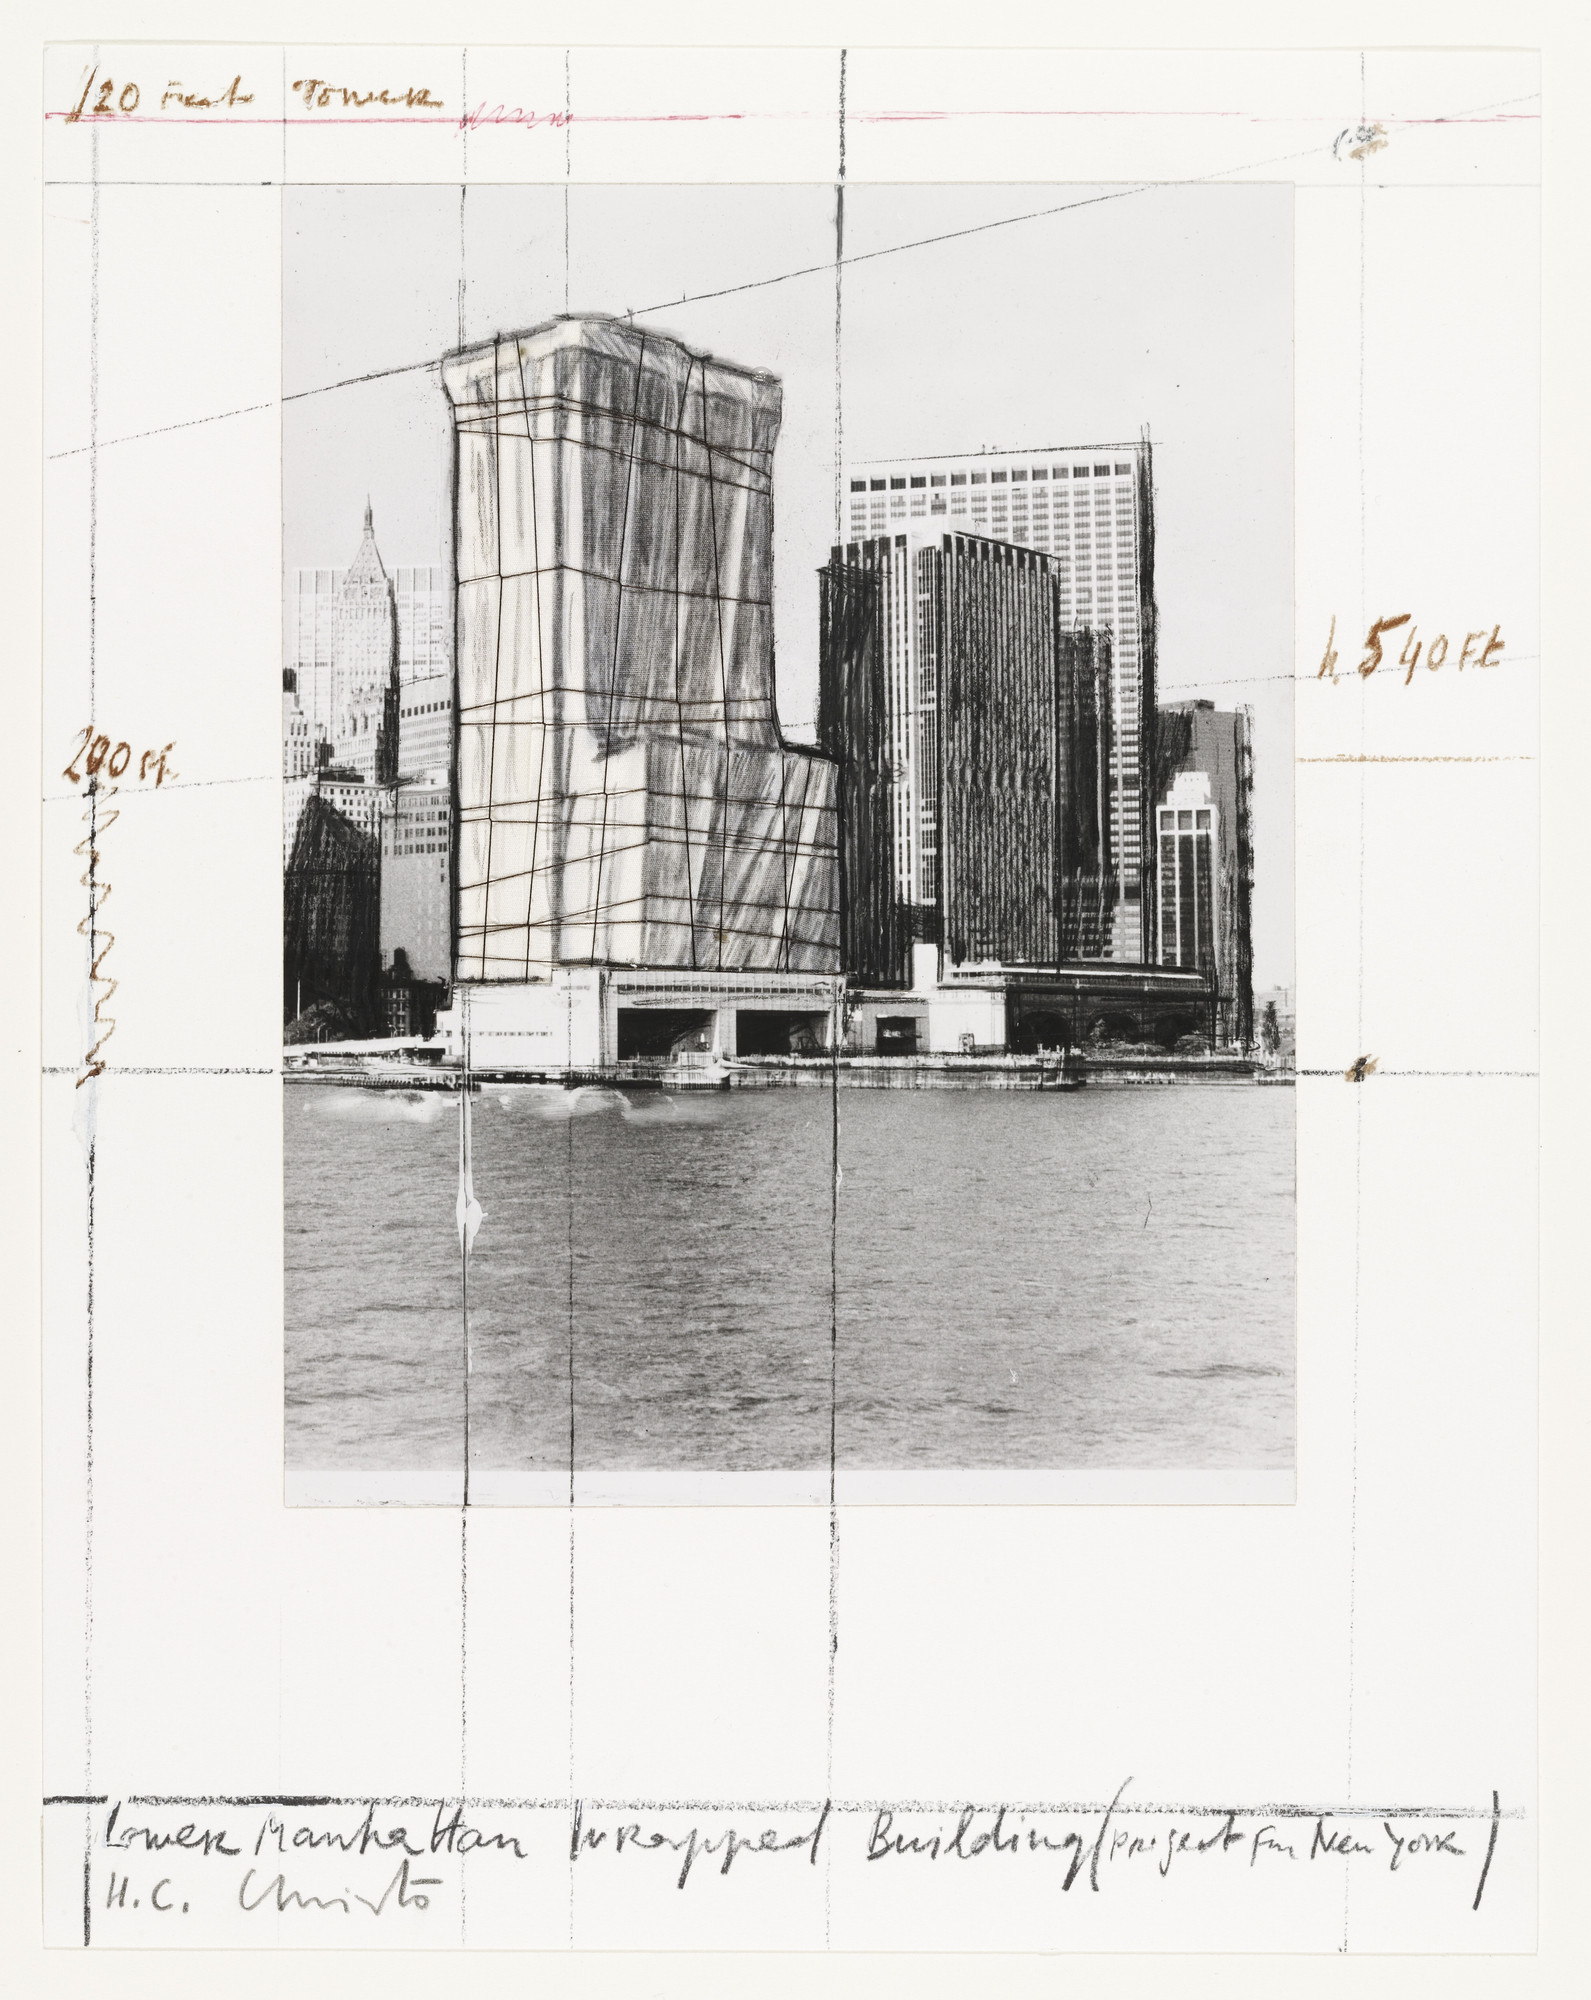 Christo. Lower Manhattan Wrapped Building, Project for New York from the portfolio Five Urban Projects. 1985